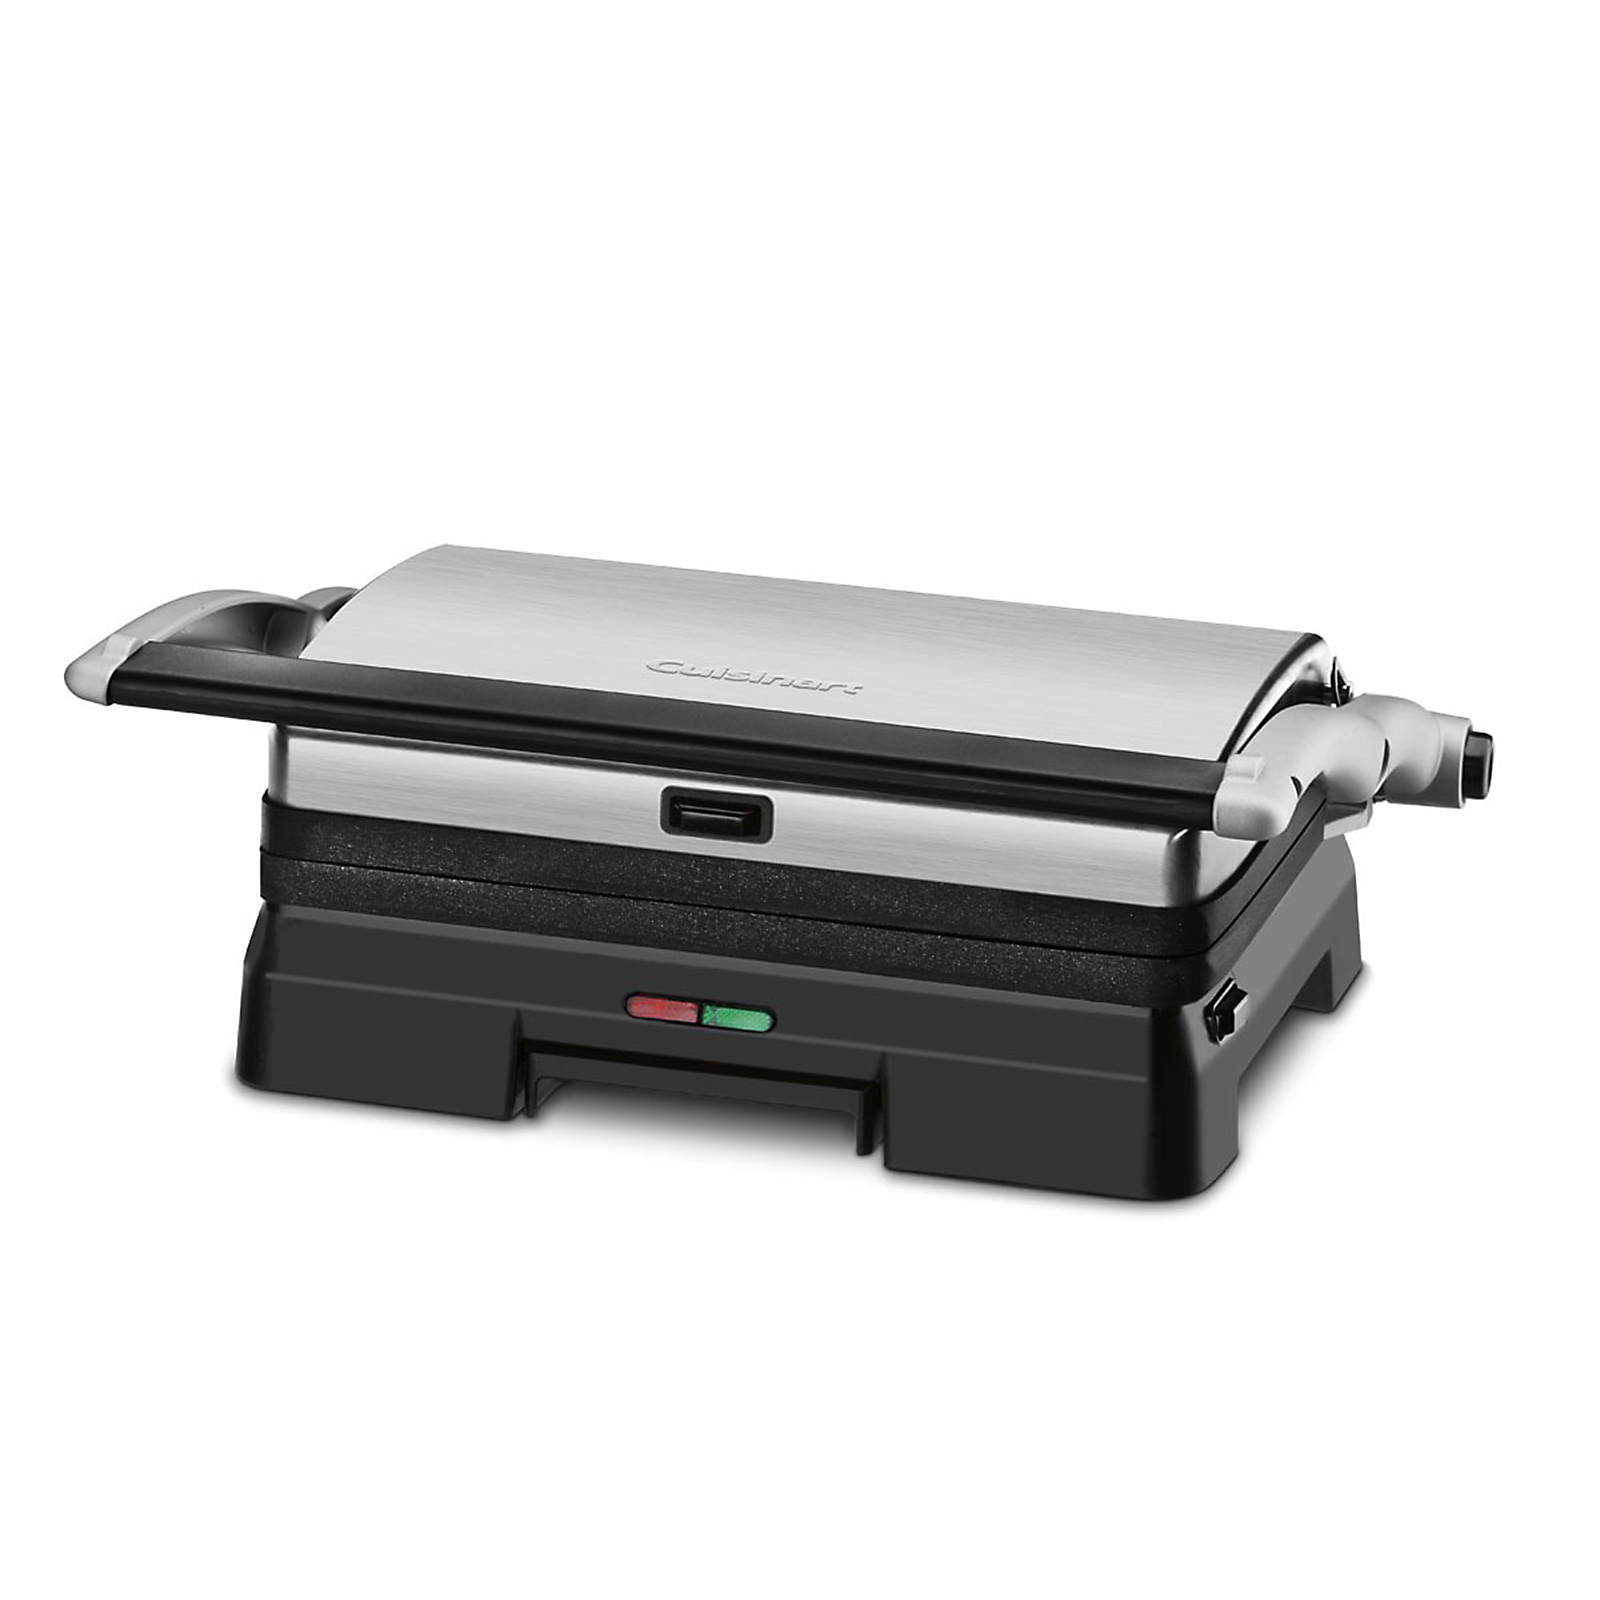 Grille Panini Cuisinart Gr 11 Griddler Grill Panini Press And Grill